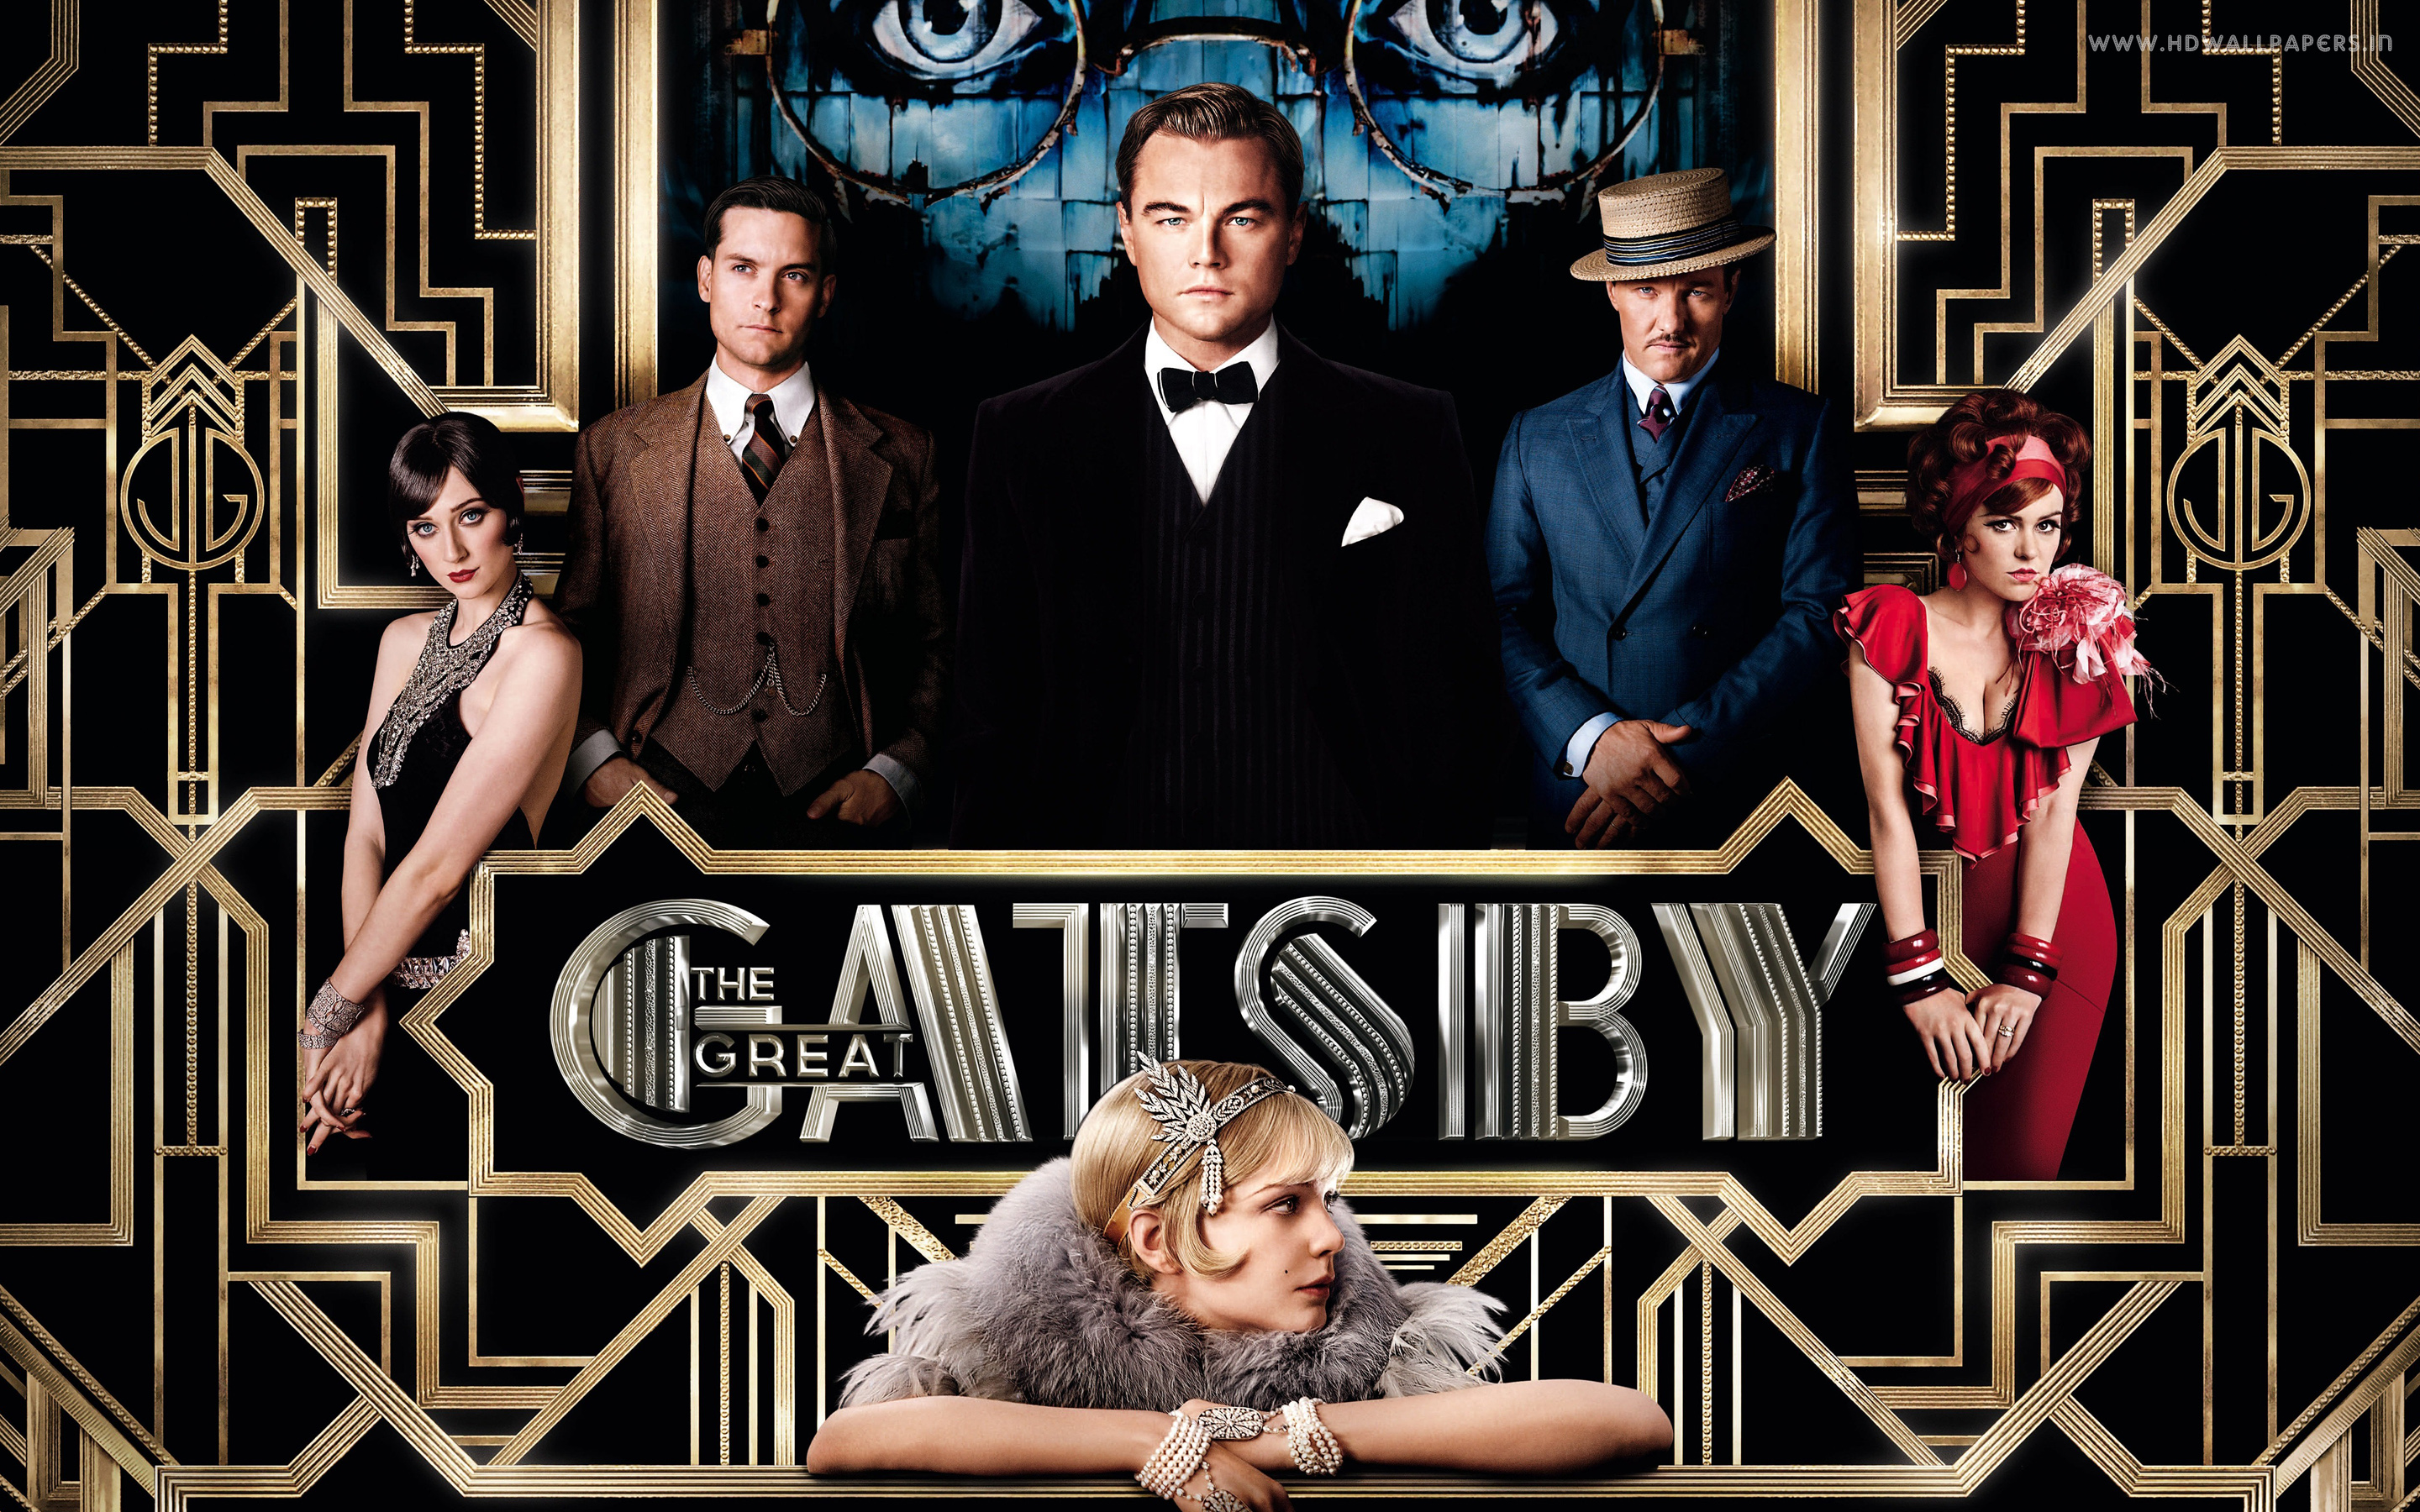 the_great_gatsby_SEIKE